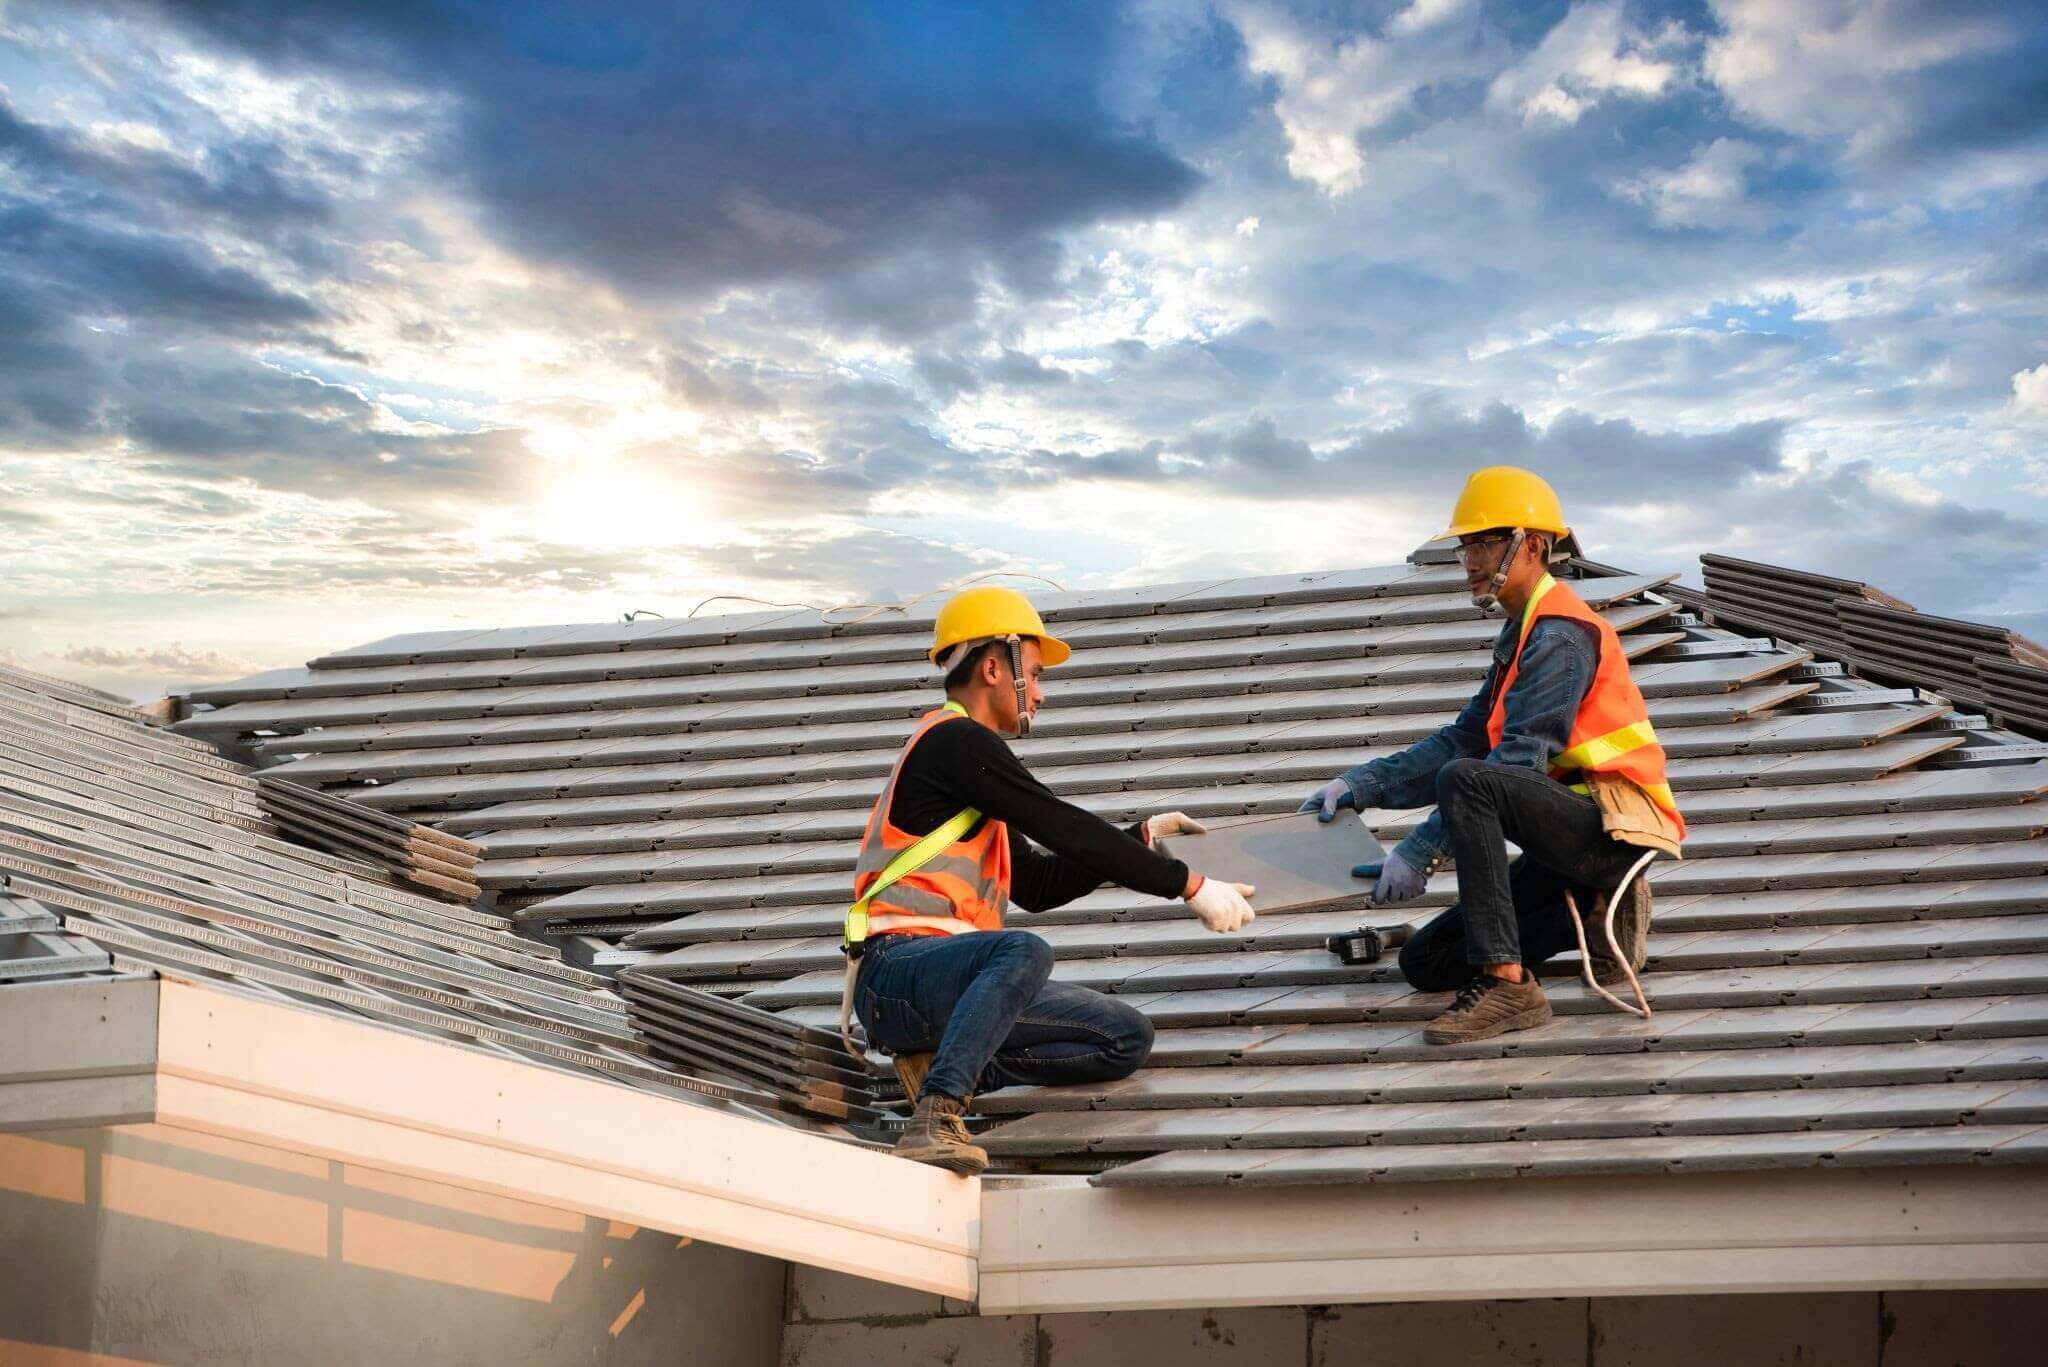 Two construction workers working on roof